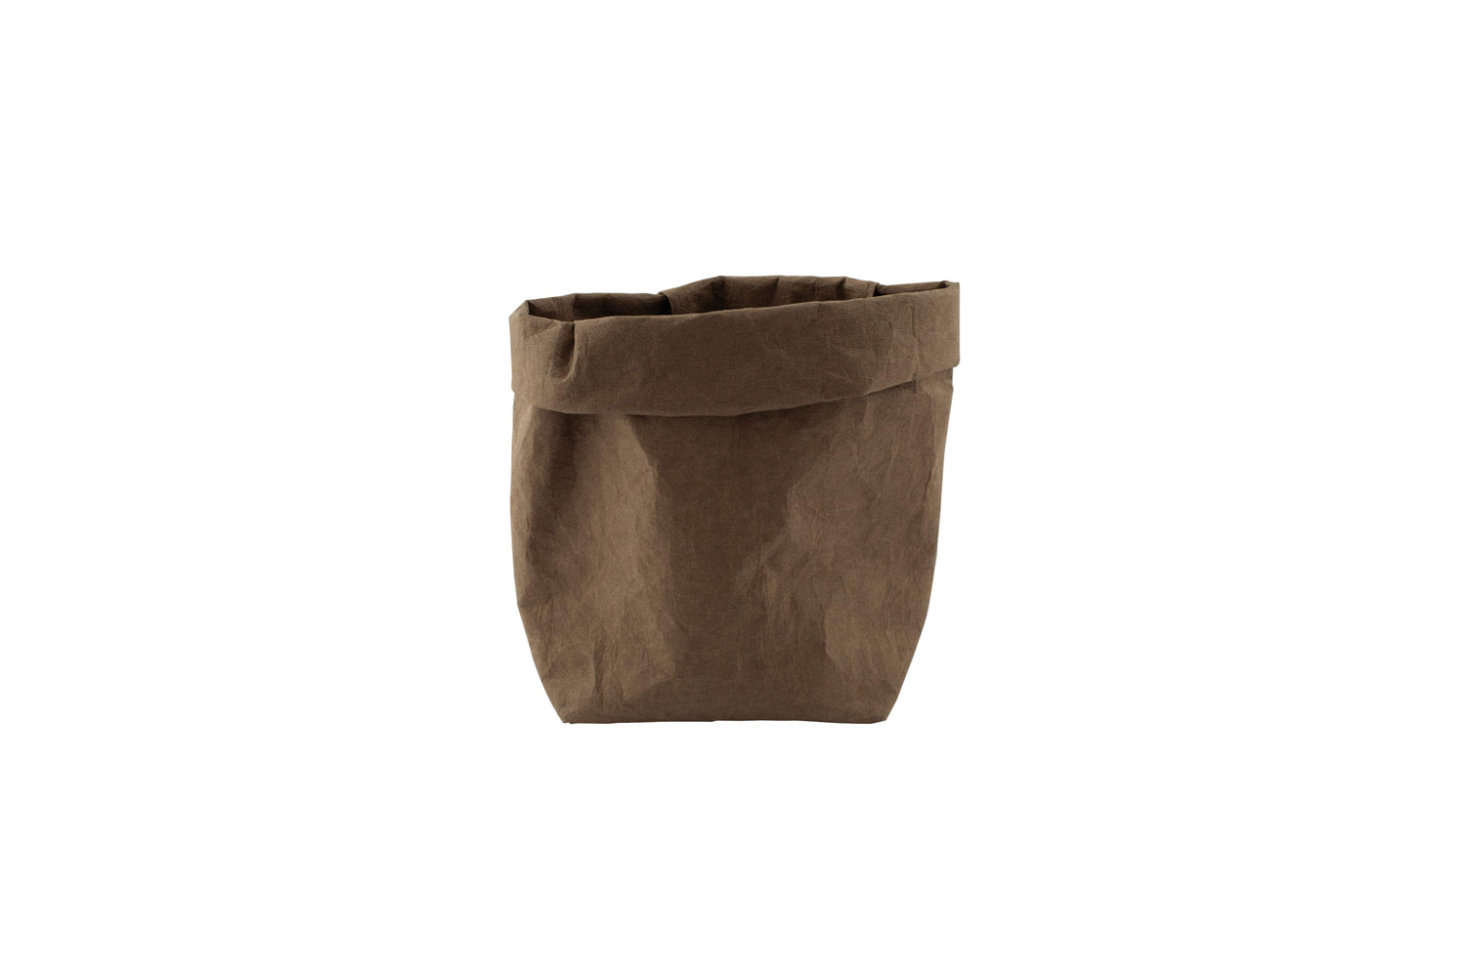 It looks like a leather bag, sort of, but it&#8